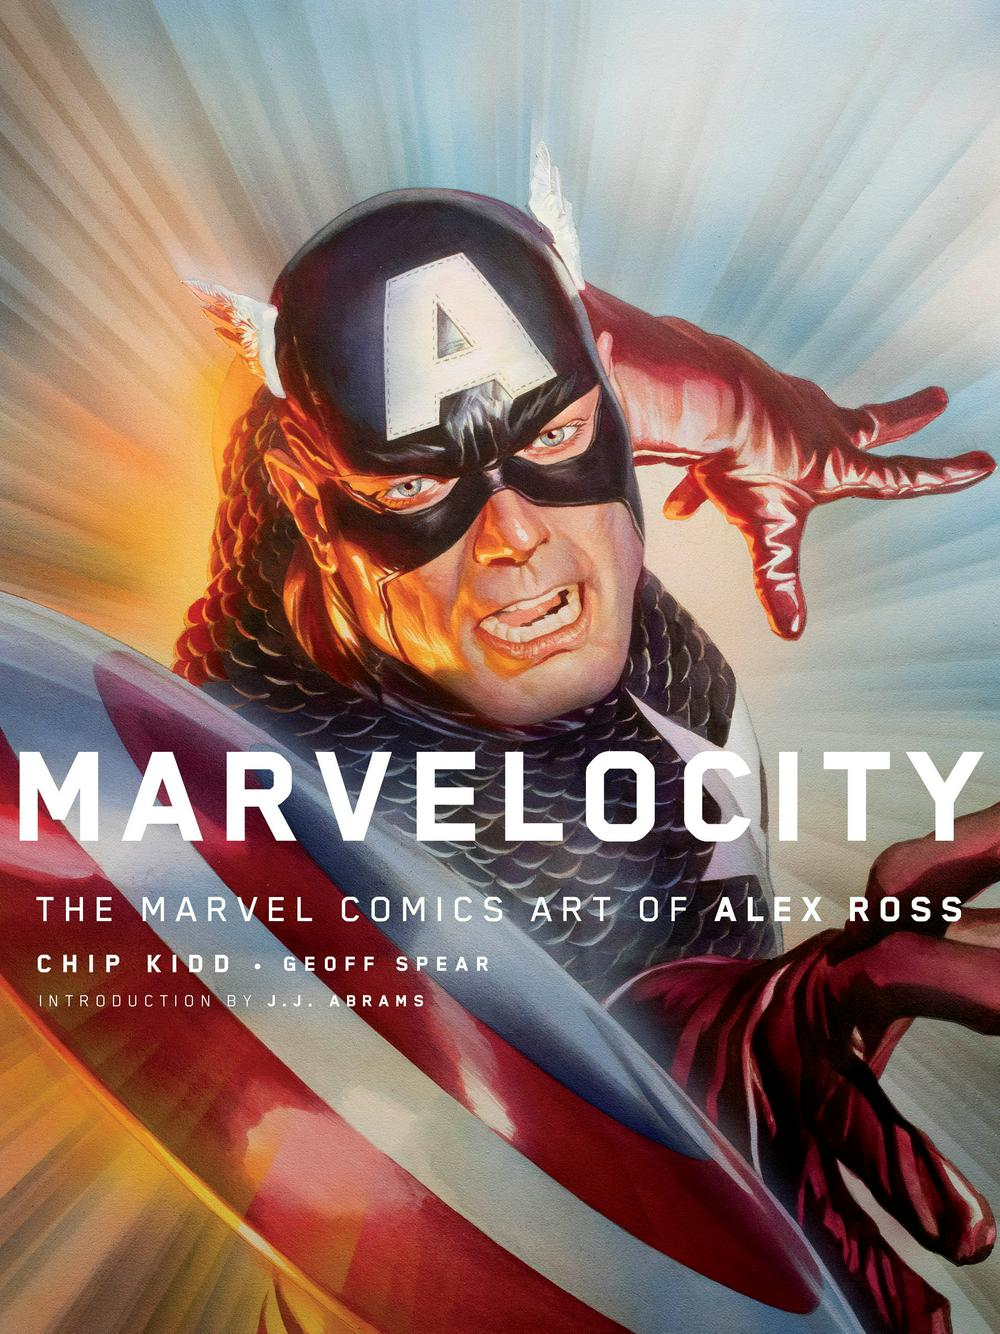 Marvelocity by Alex Ross, ISBN: 9781101871973